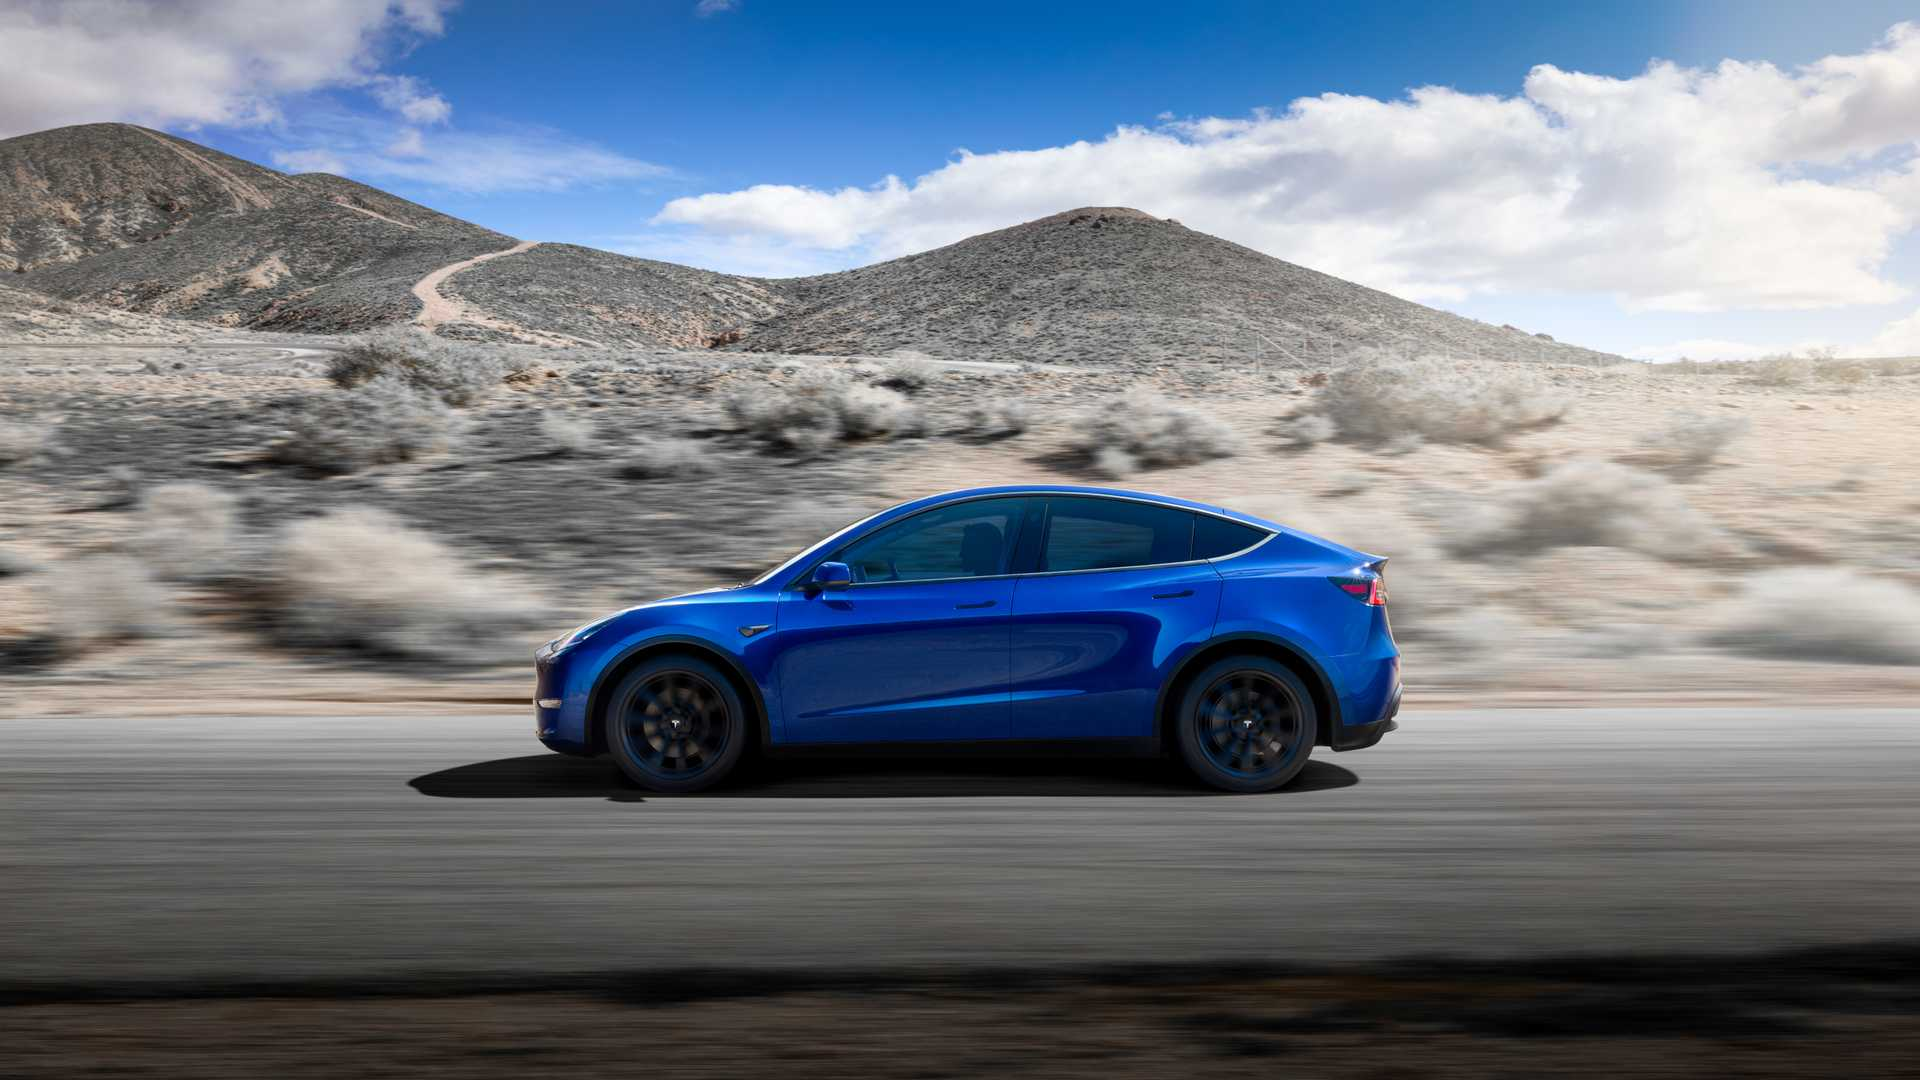 Tesla Model Y Not A Crossover, But A Tall Sedan: Says Designer